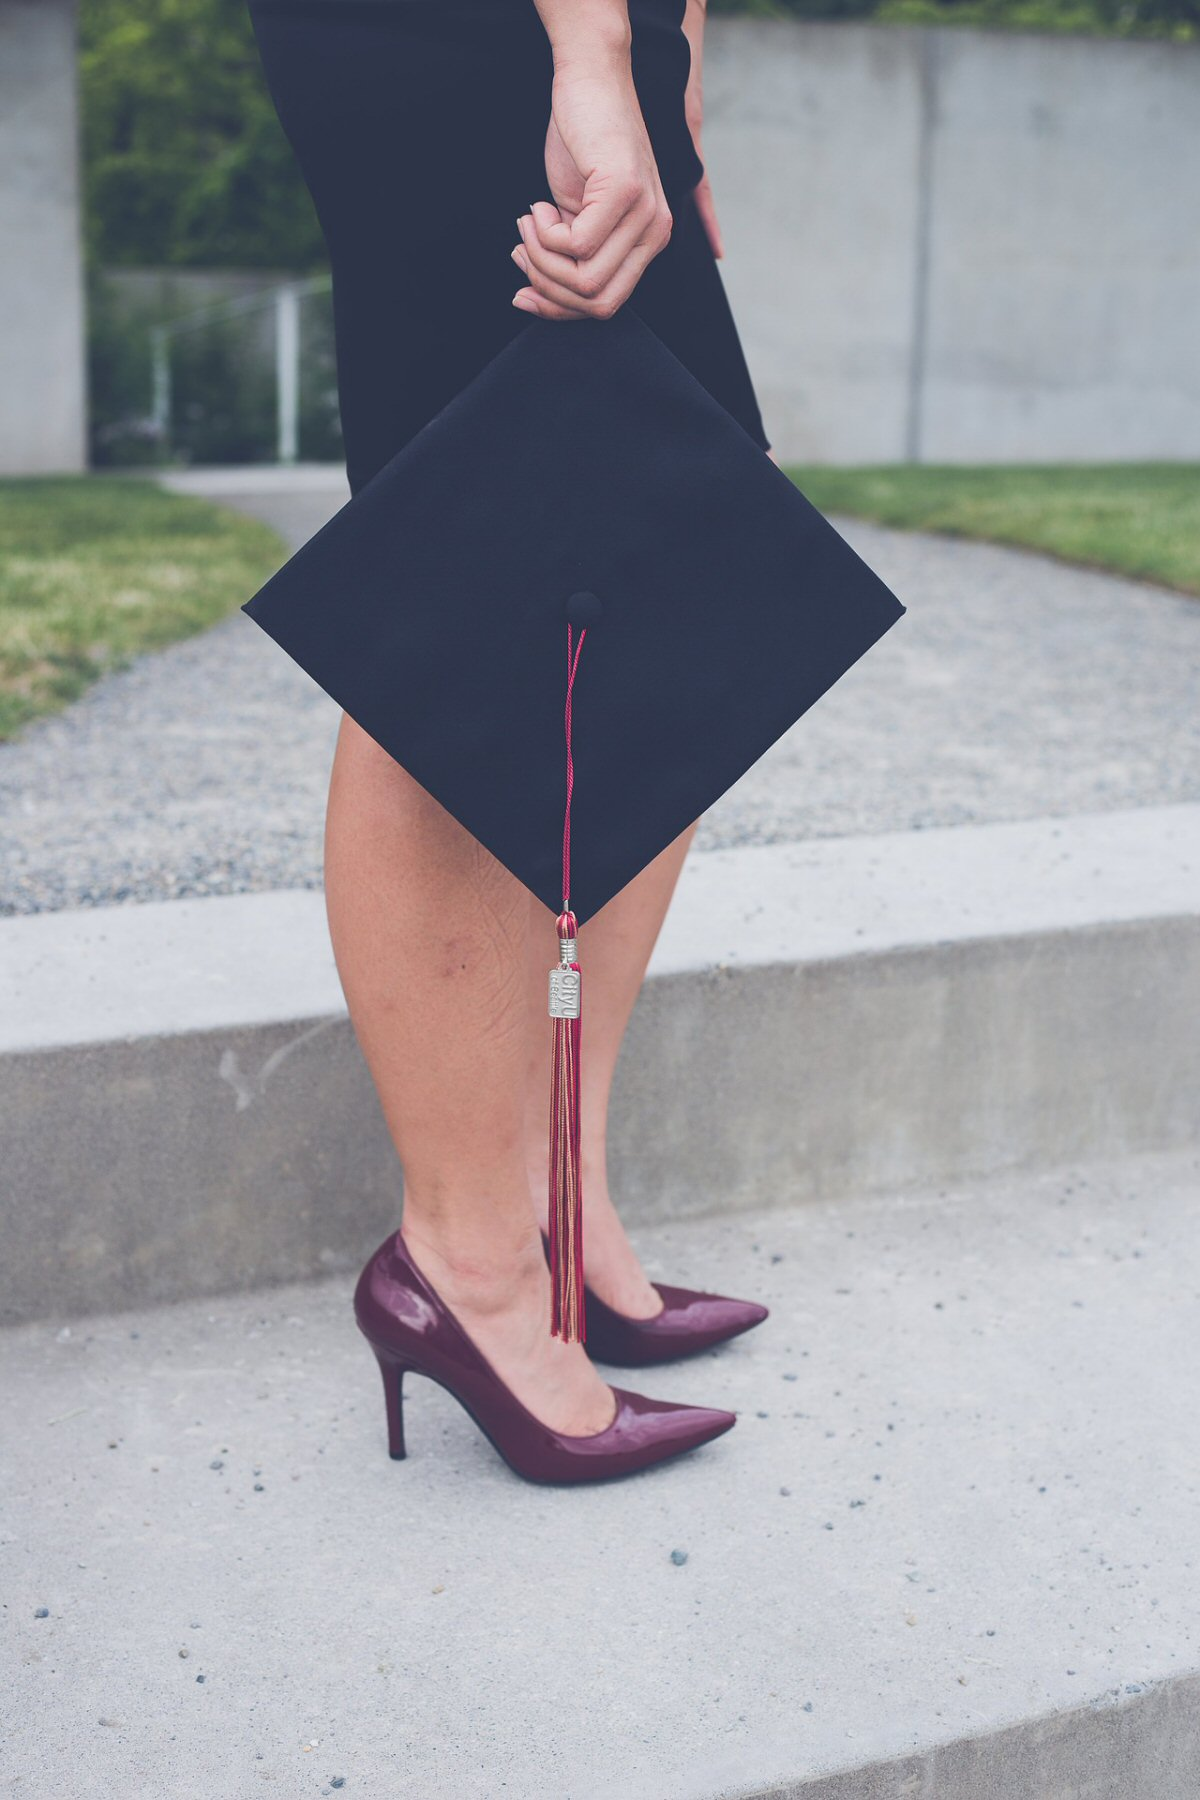 So You've Graduated - Work While You Job Hunt